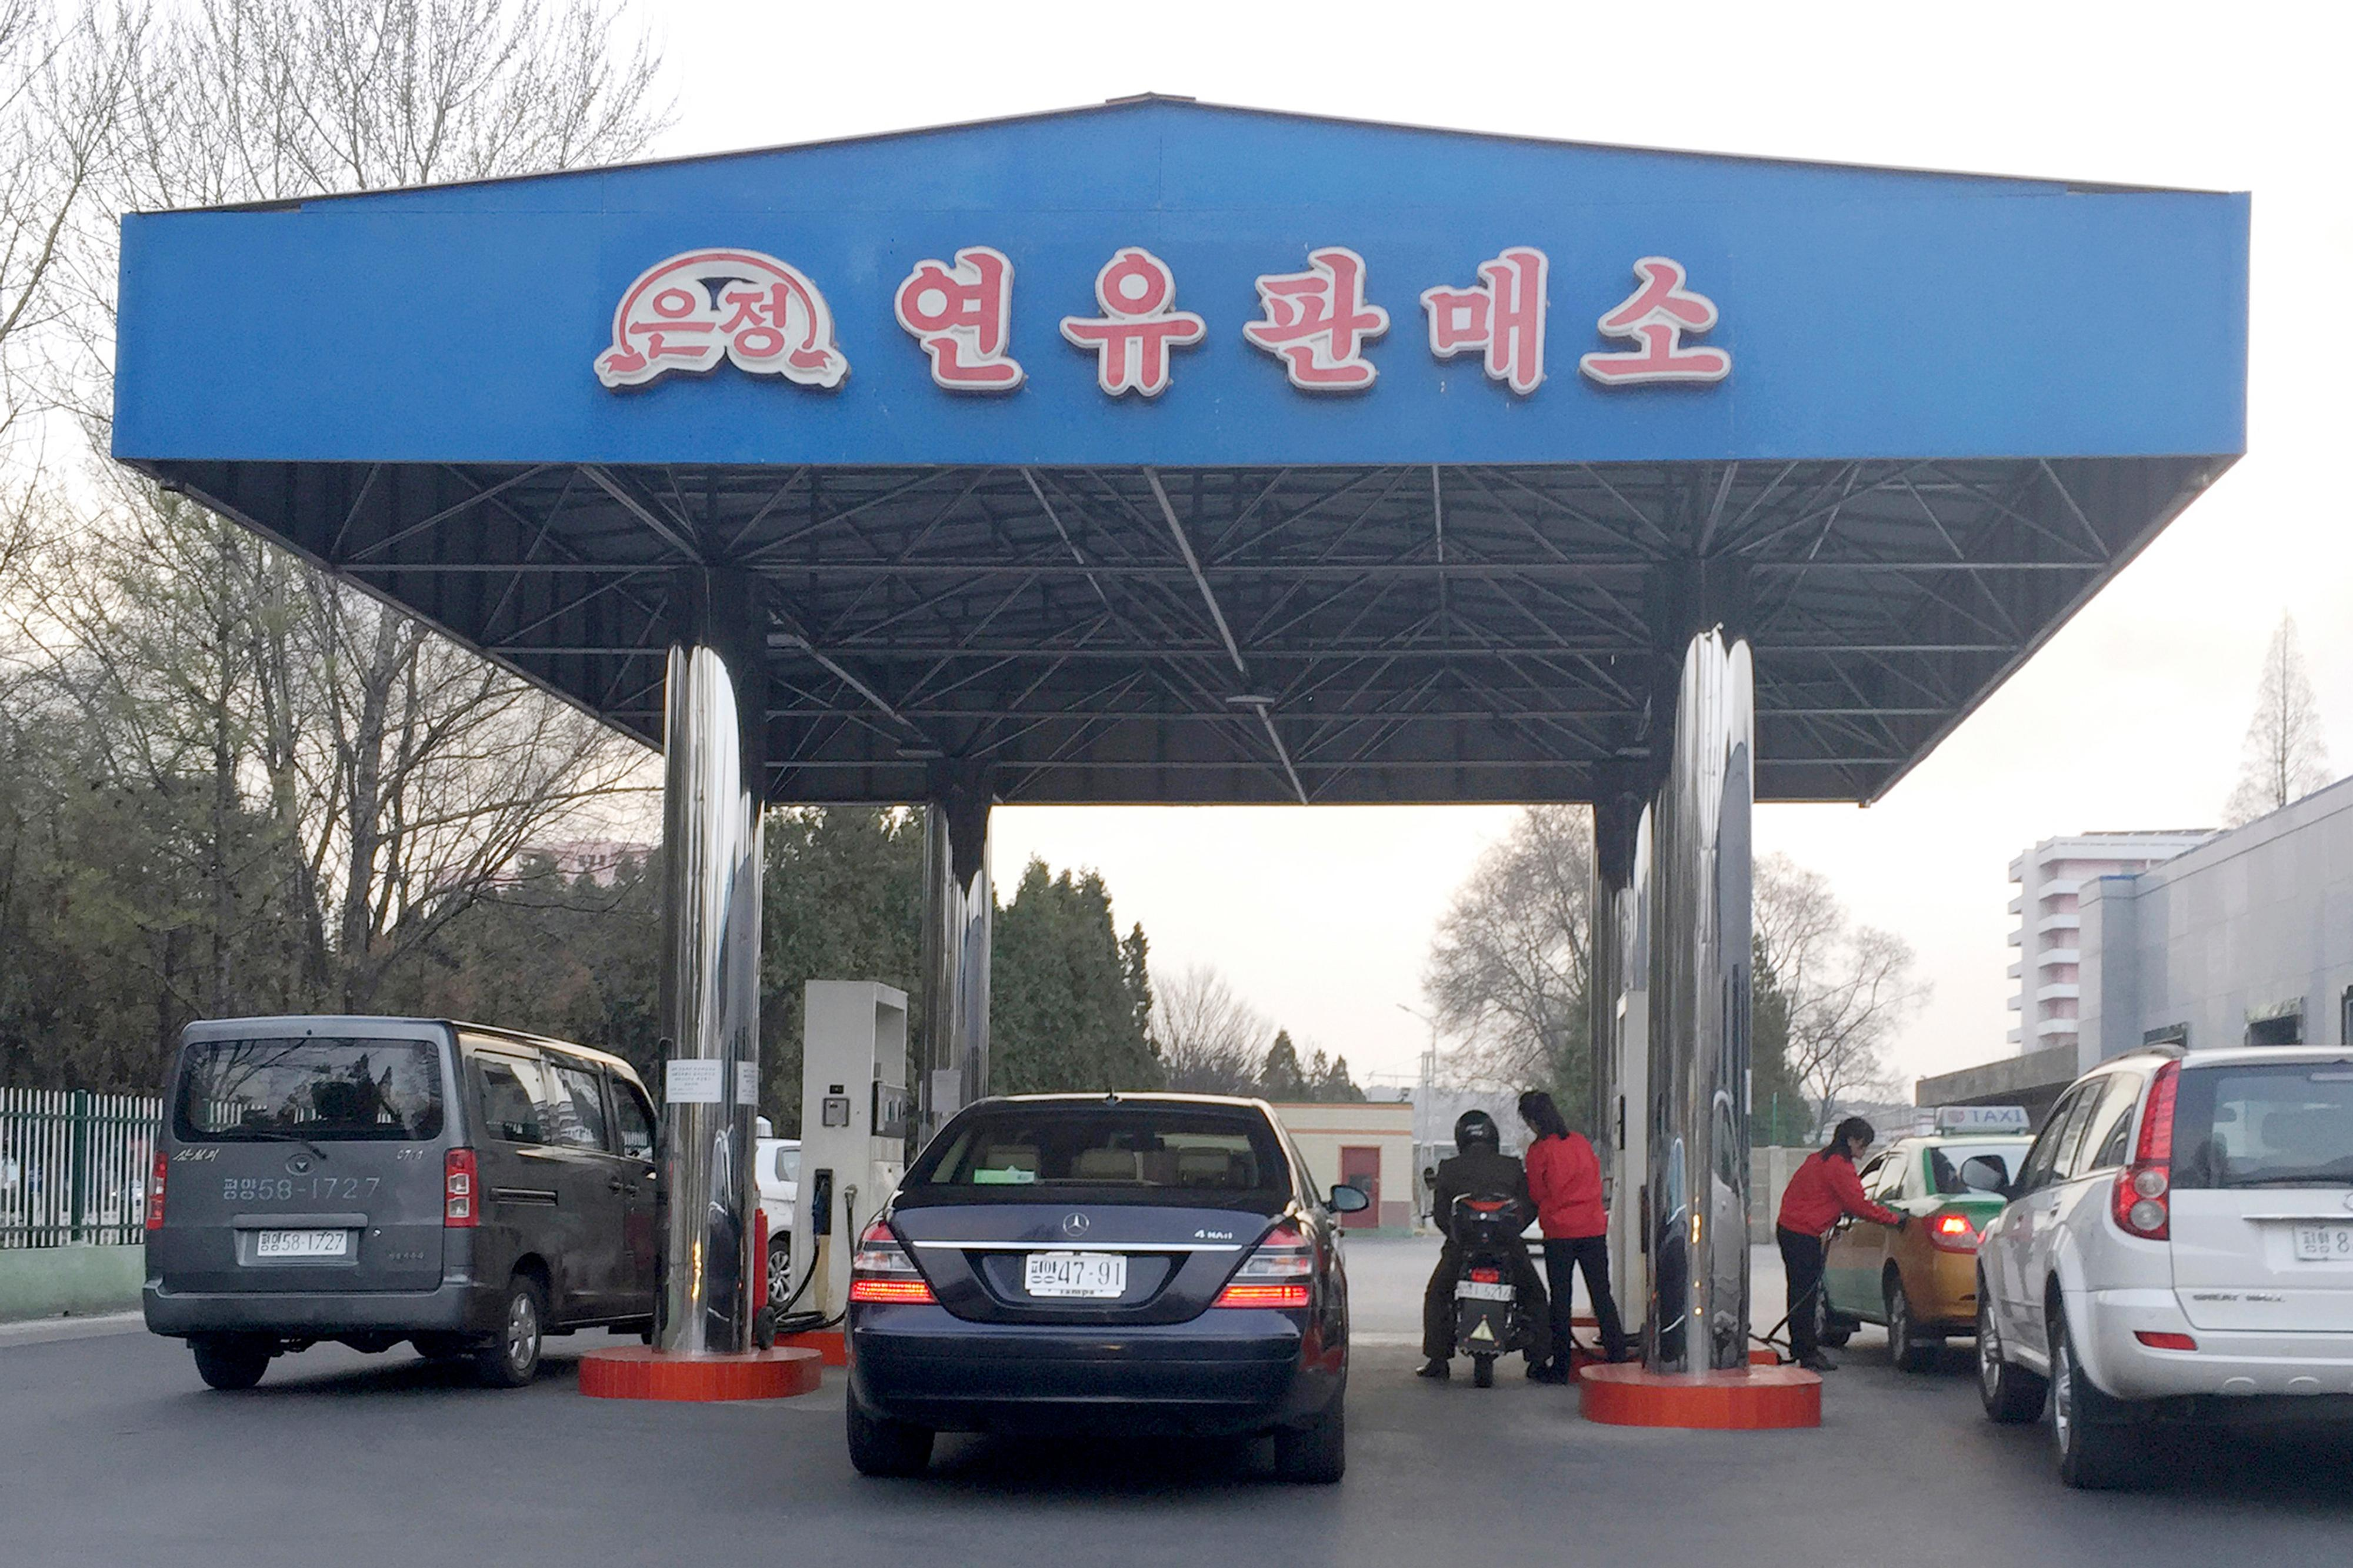 n this April 1, 2016, photo, cars line up at at a gas station in Pyongyang, North Korea. North Korea has been condemned and sanctioned for its nuclear ambitions, yet has still received food, fuel and other aid from its neighbors and adversaries for decades. How does the small, isolated country keep getting what it wants and needs to prevent its collapse? (AP Photo/Eric Talmadge, File)